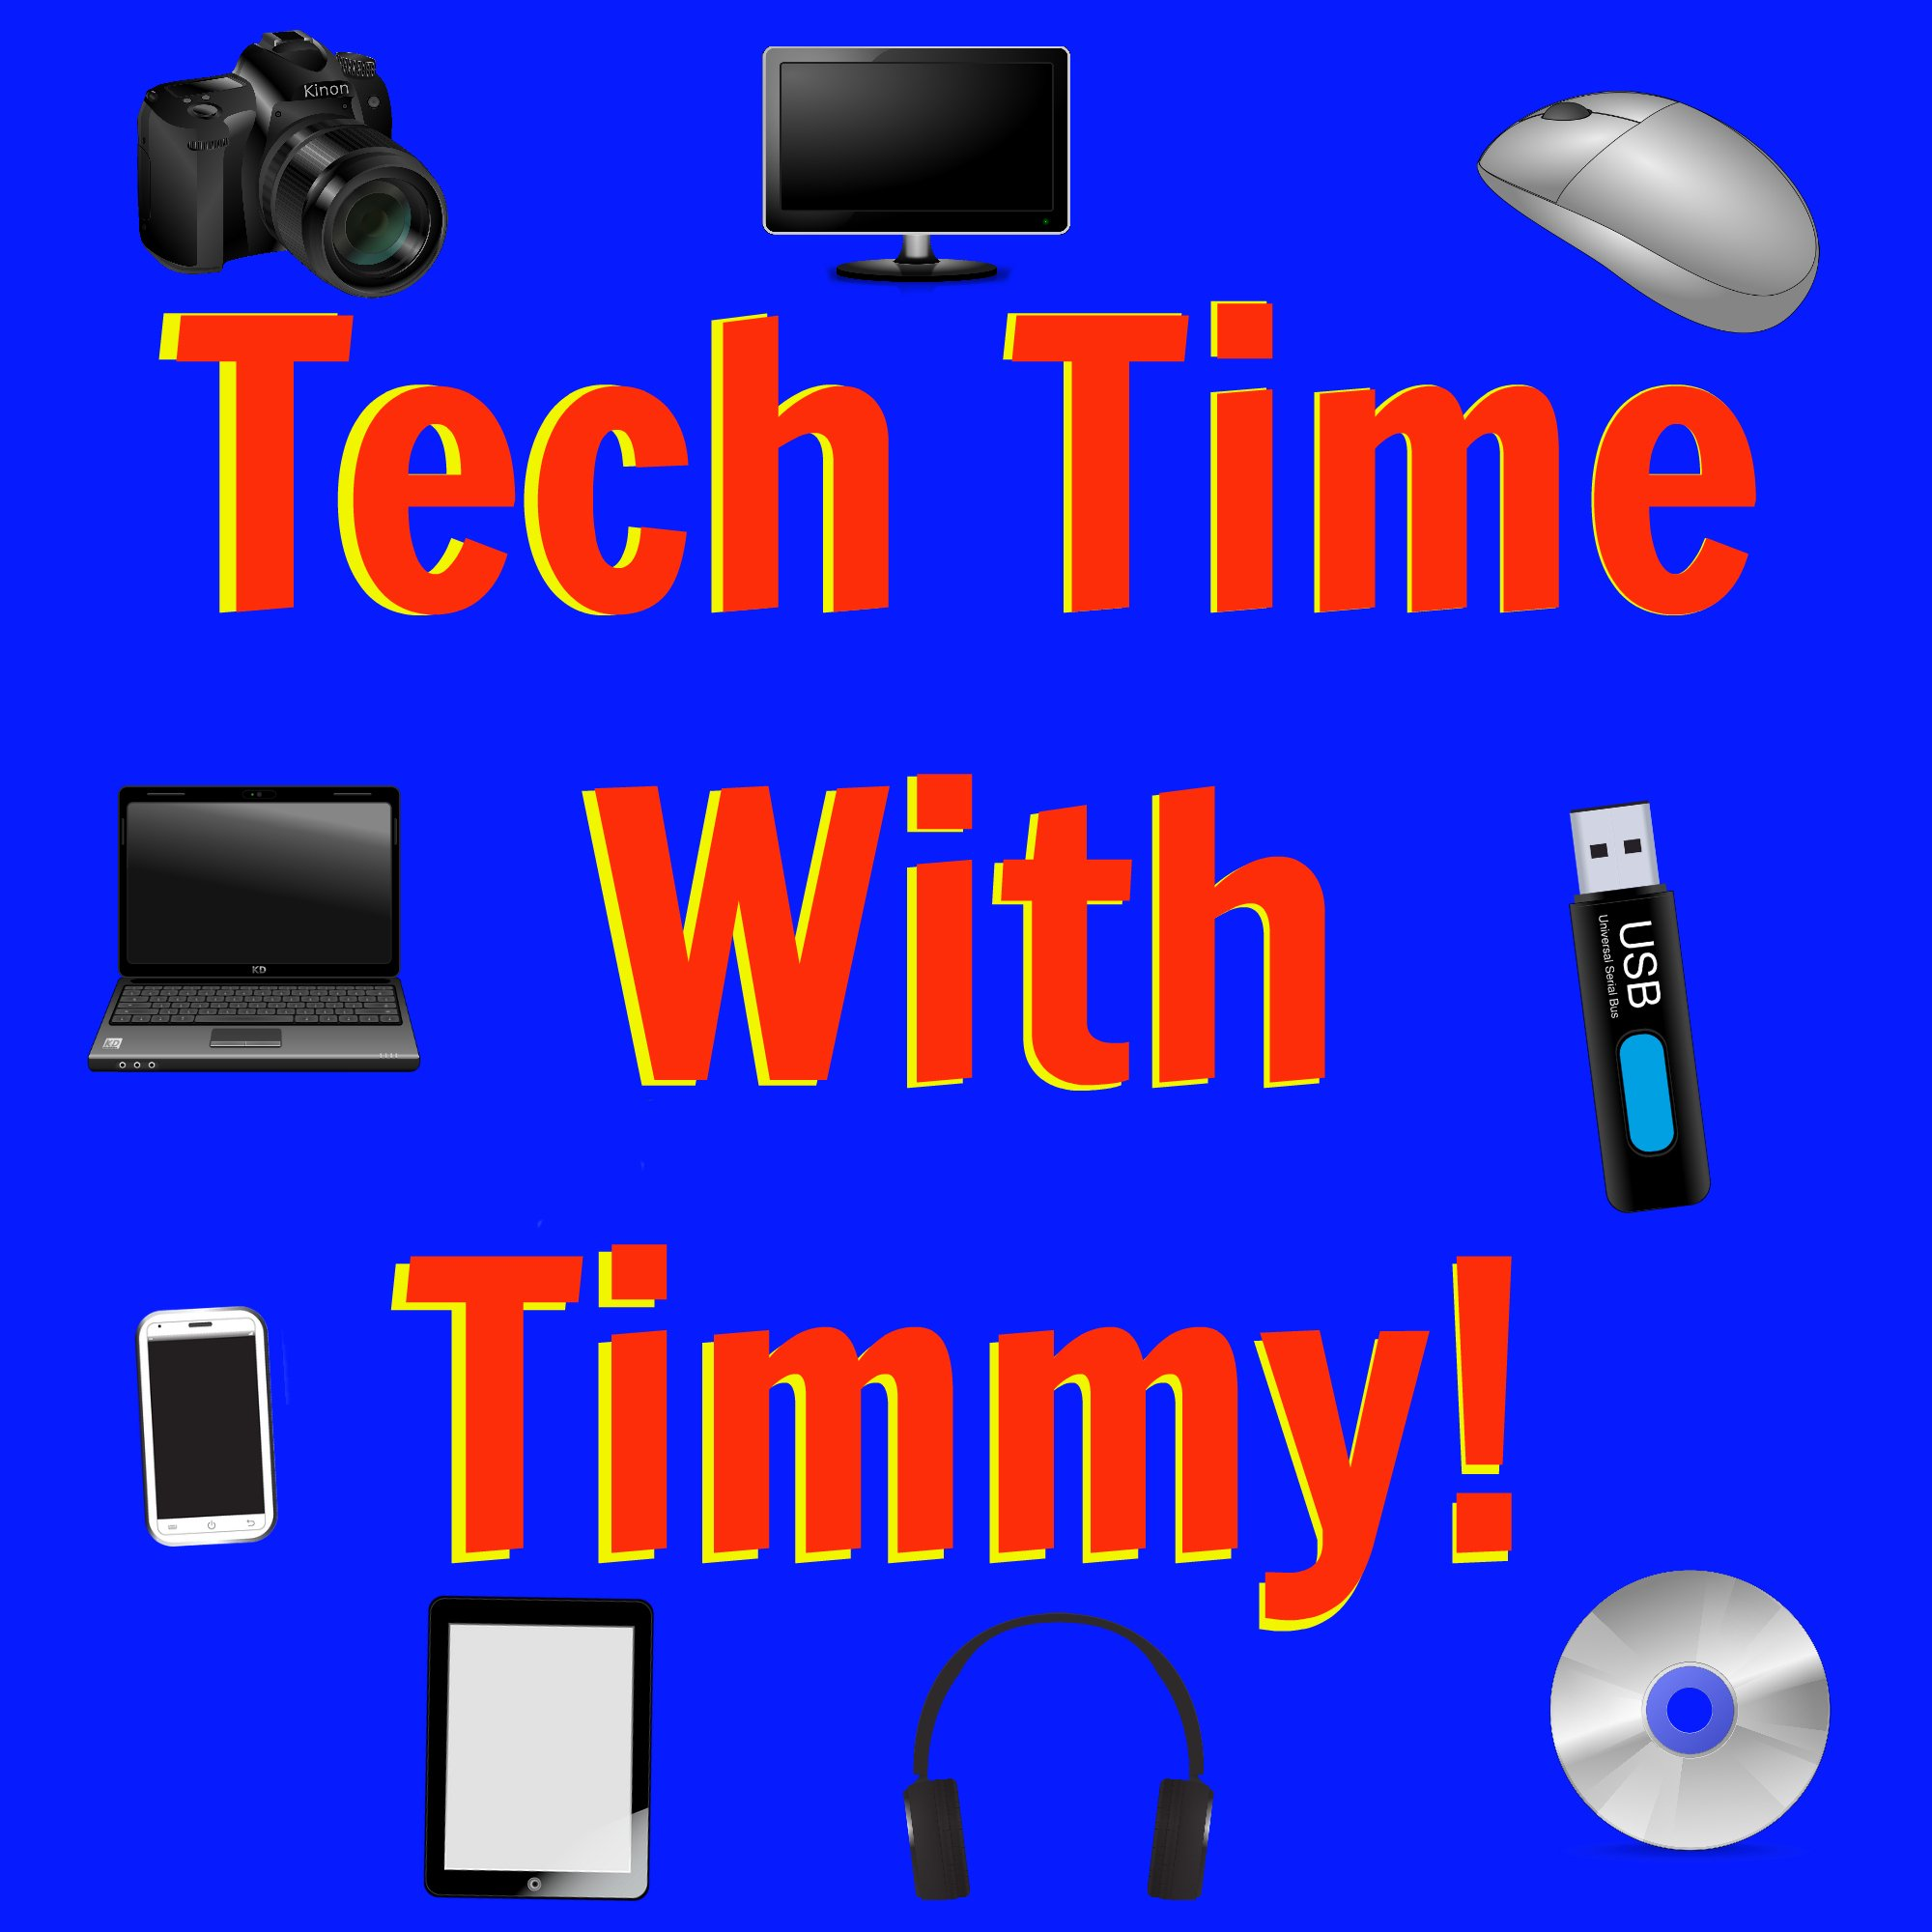 Tech Time With Timmy logo